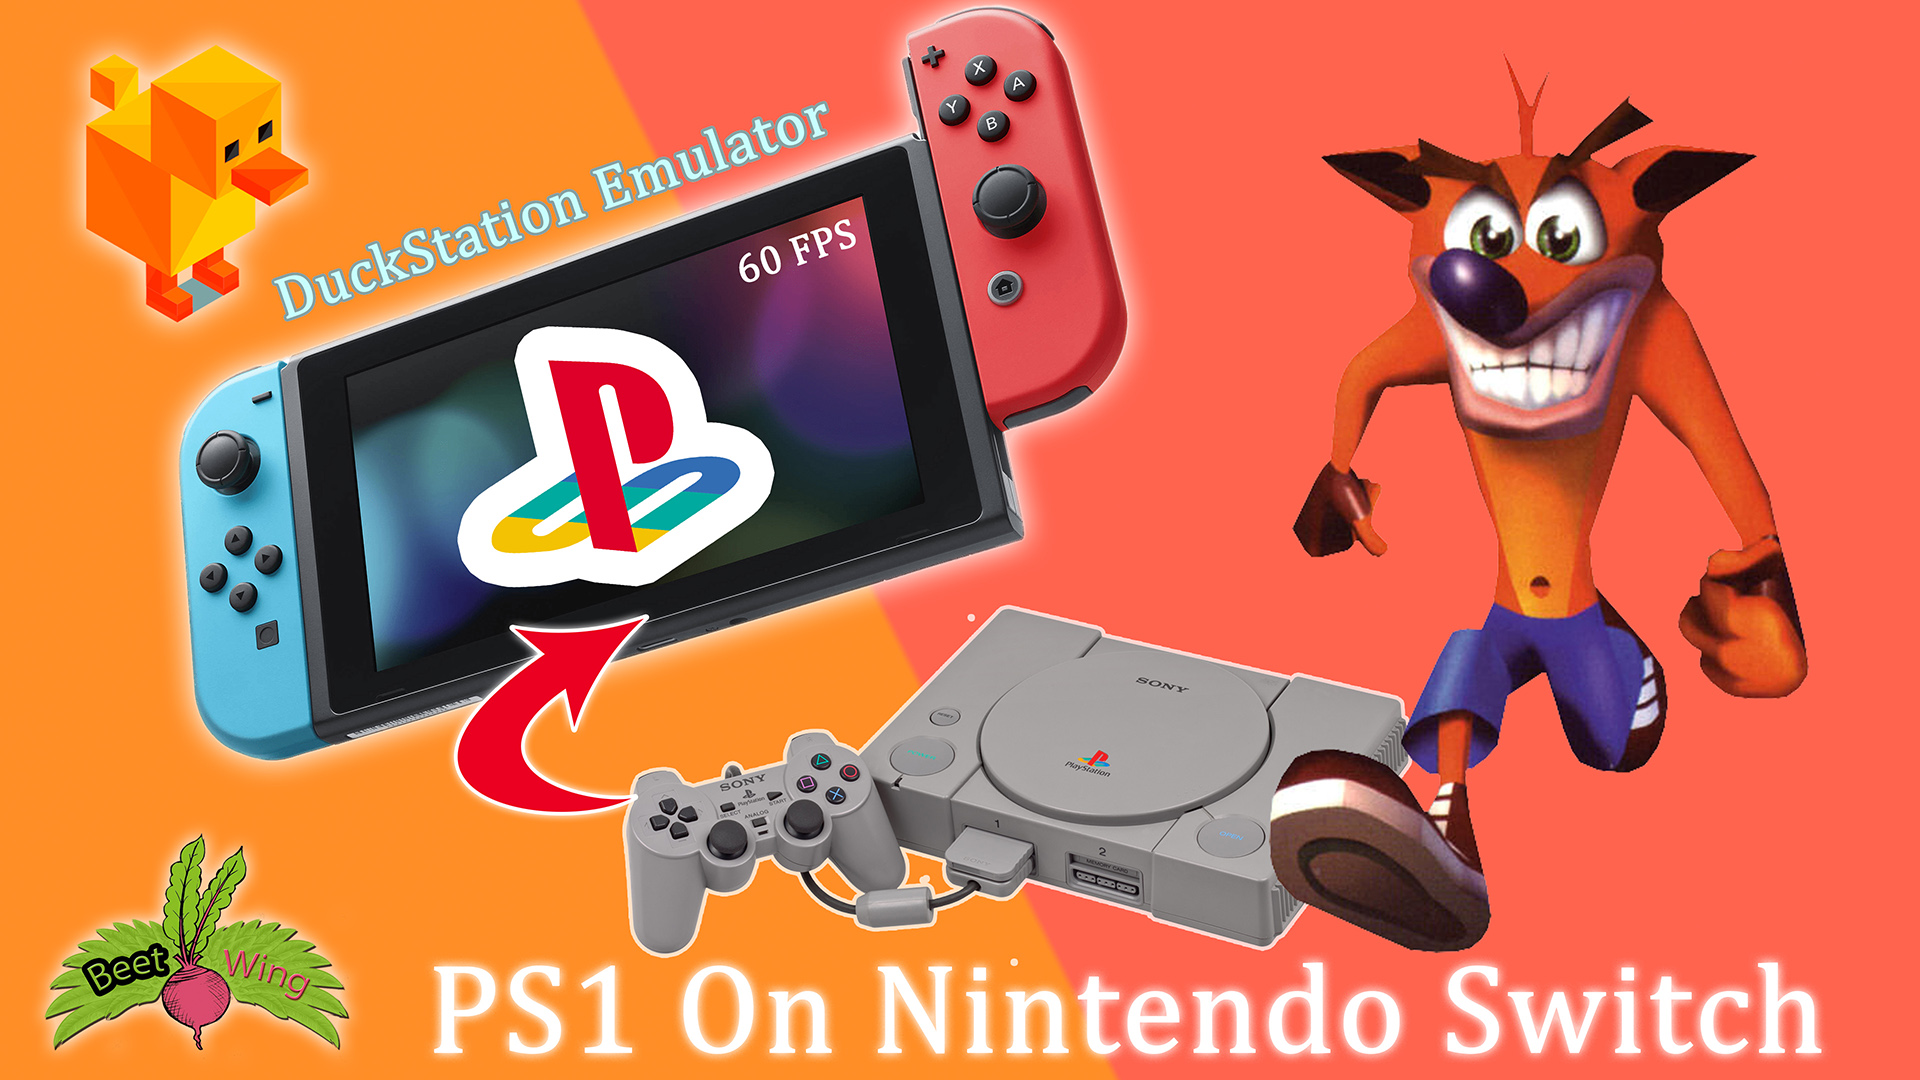 PS1 On Nintendo Switch DuckStation Emulator